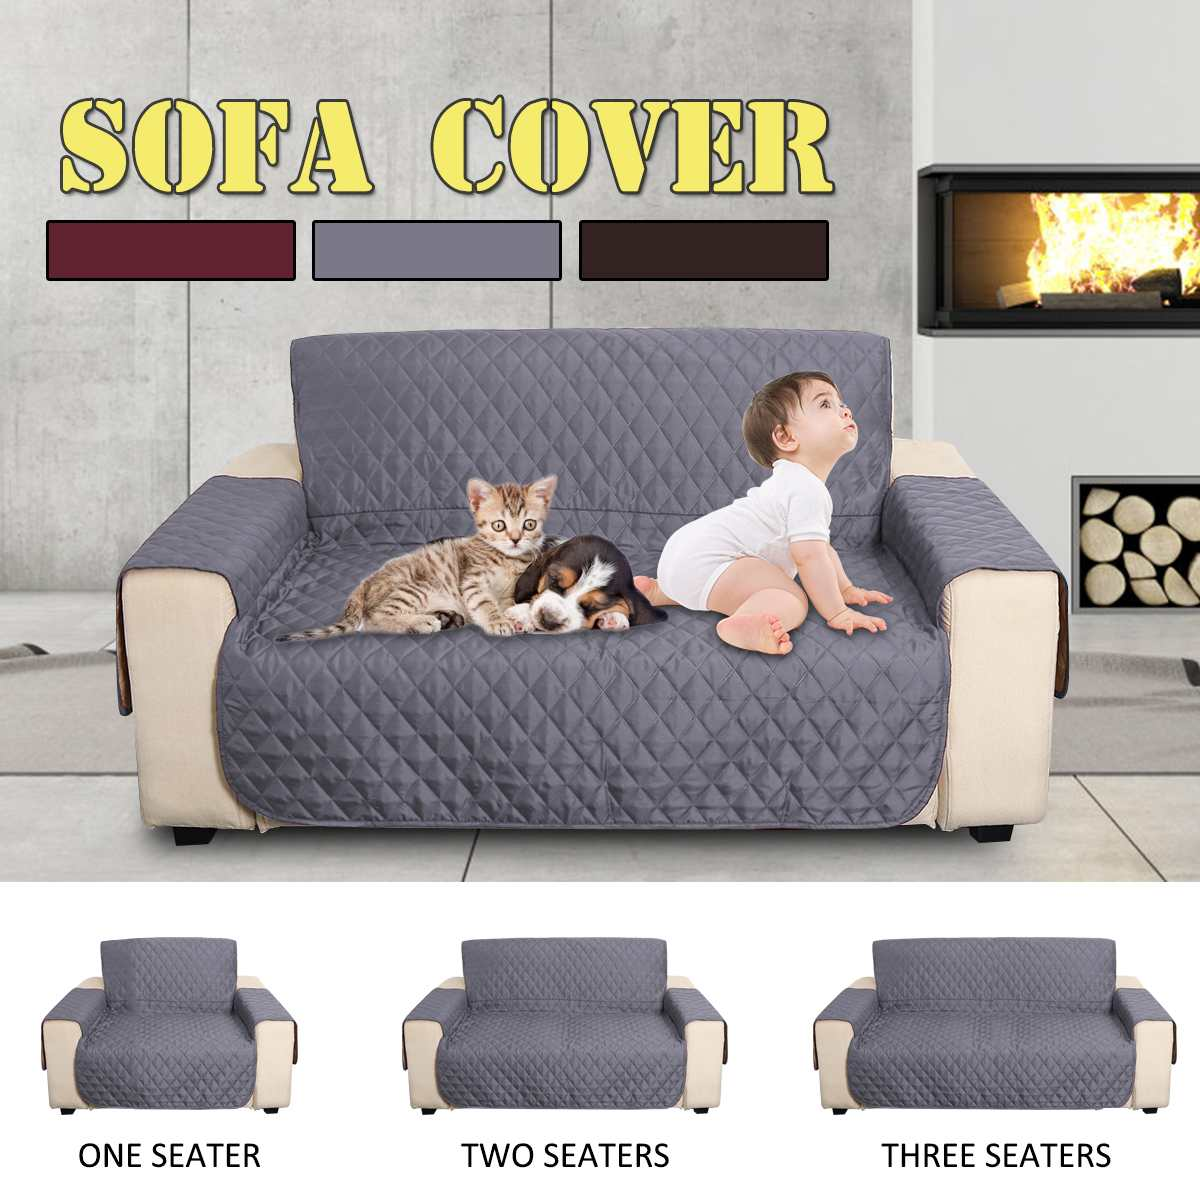 Astonishing Us 13 77 52 Off Waterproof 1 2 3 Seaters Sofa Cover Quilted Anti Slip Couch Chair Furniture Protector Pad Pet Dogs Slipcovers Mat For Livingroom In Short Links Chair Design For Home Short Linksinfo